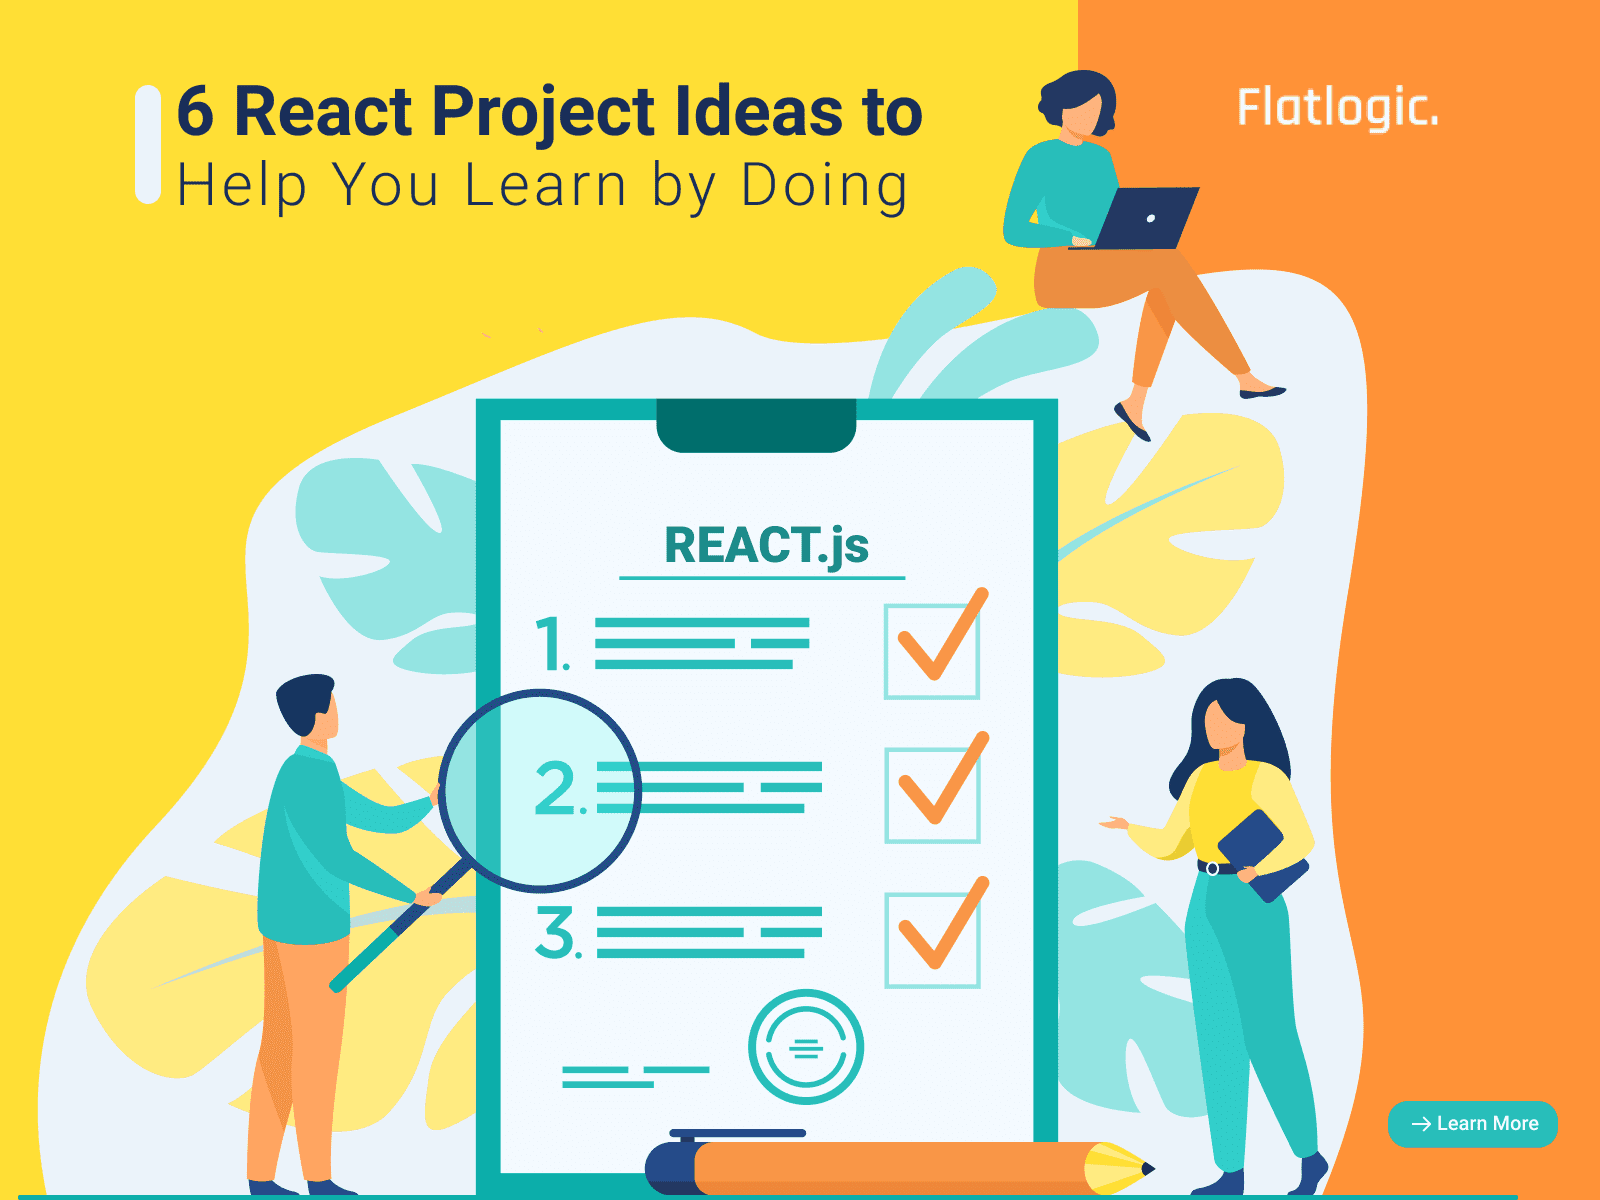 6 React Project Ideas to Help You Learn by Doing